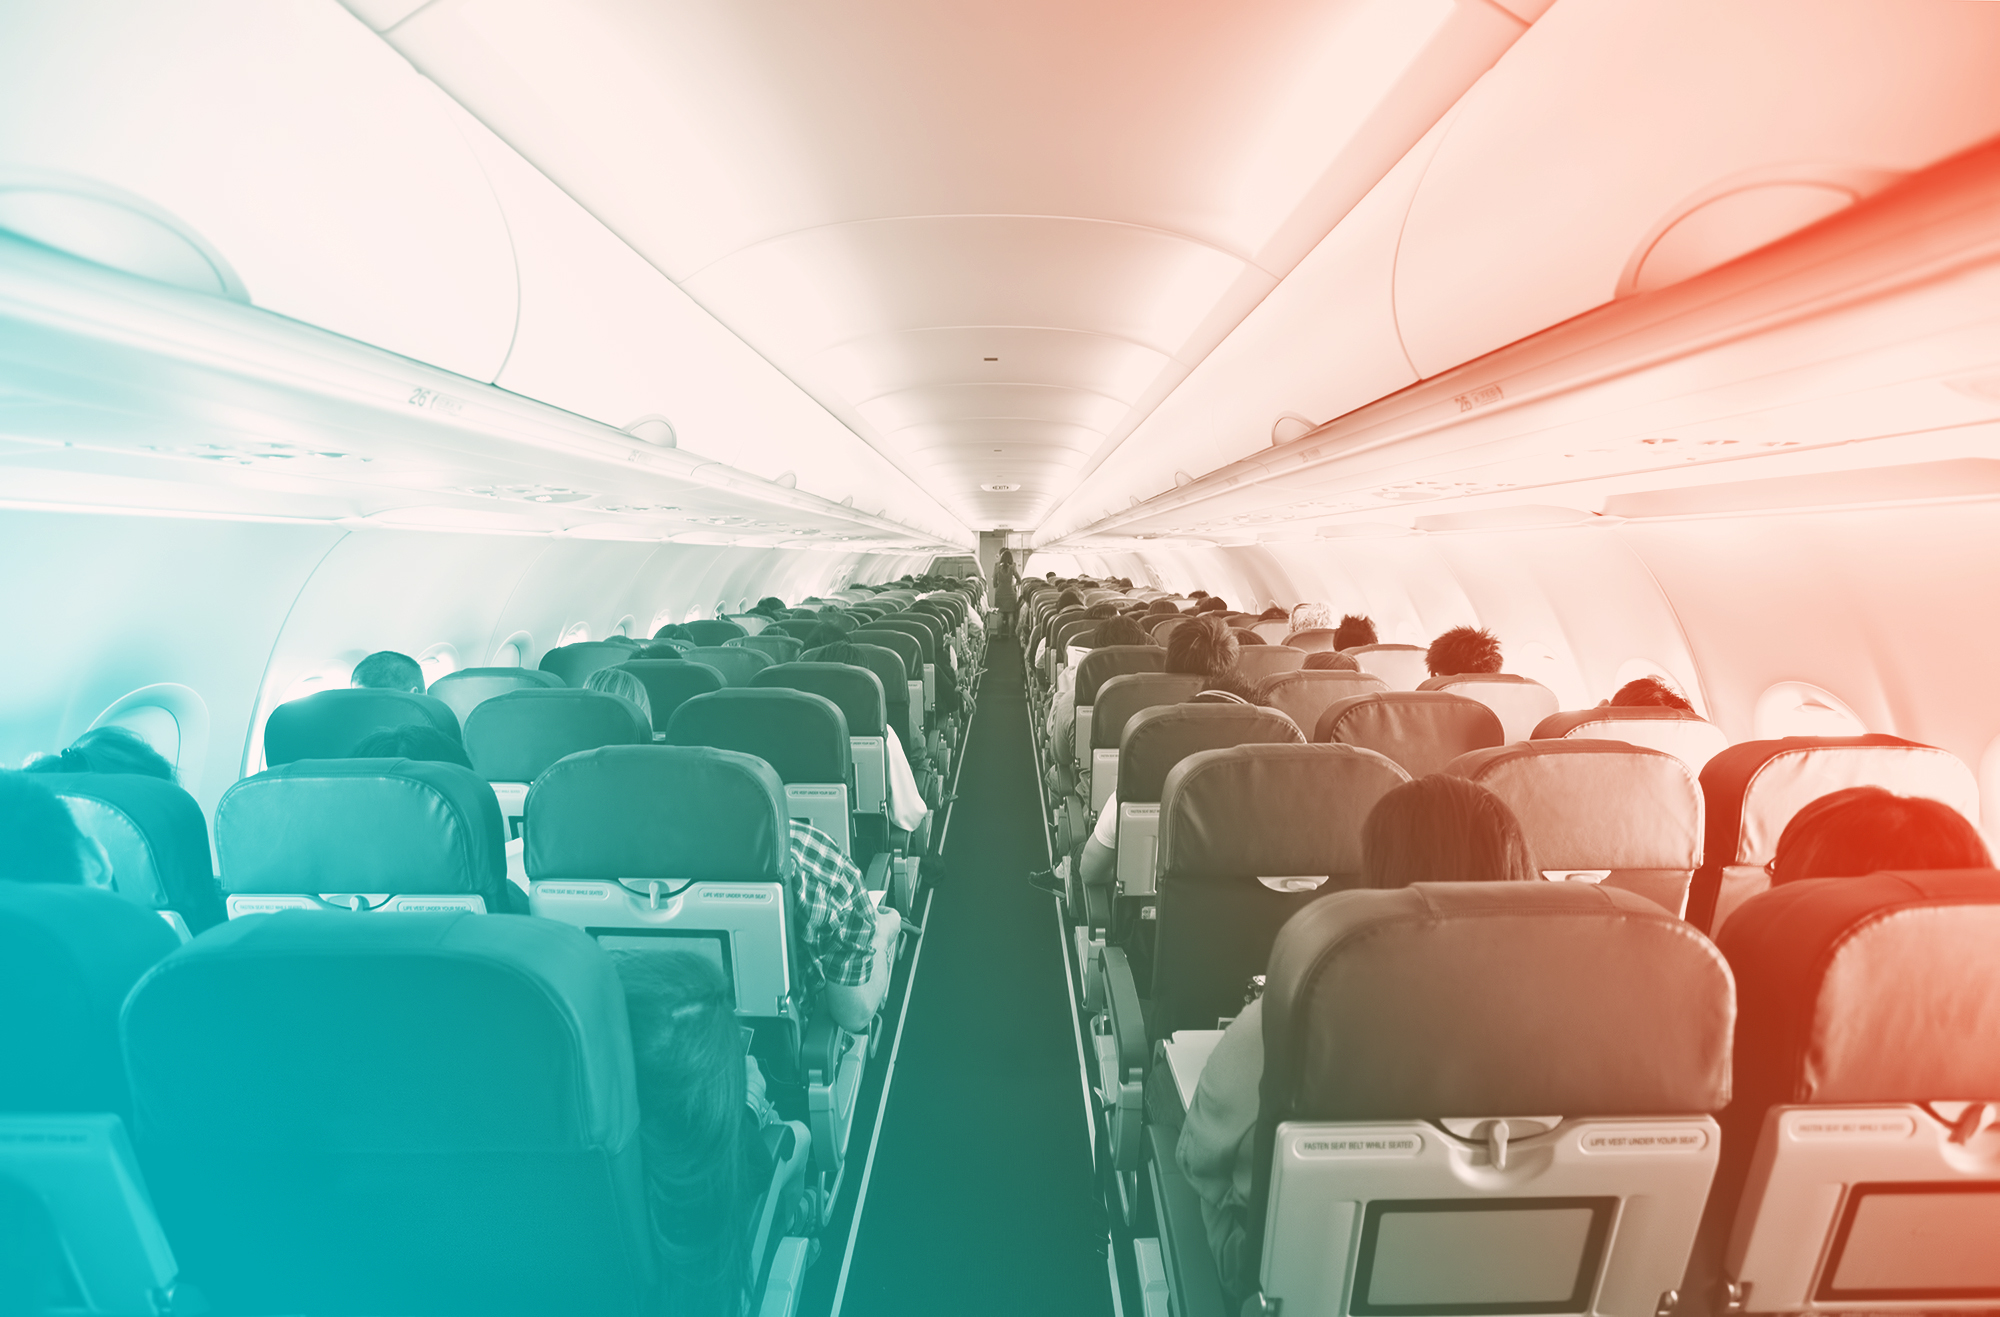 woman dies of COVID in airplane , Passengers inside the cabin of a commercial airliner during flight. Shallow depth of field with focus on the seats in the foreground.